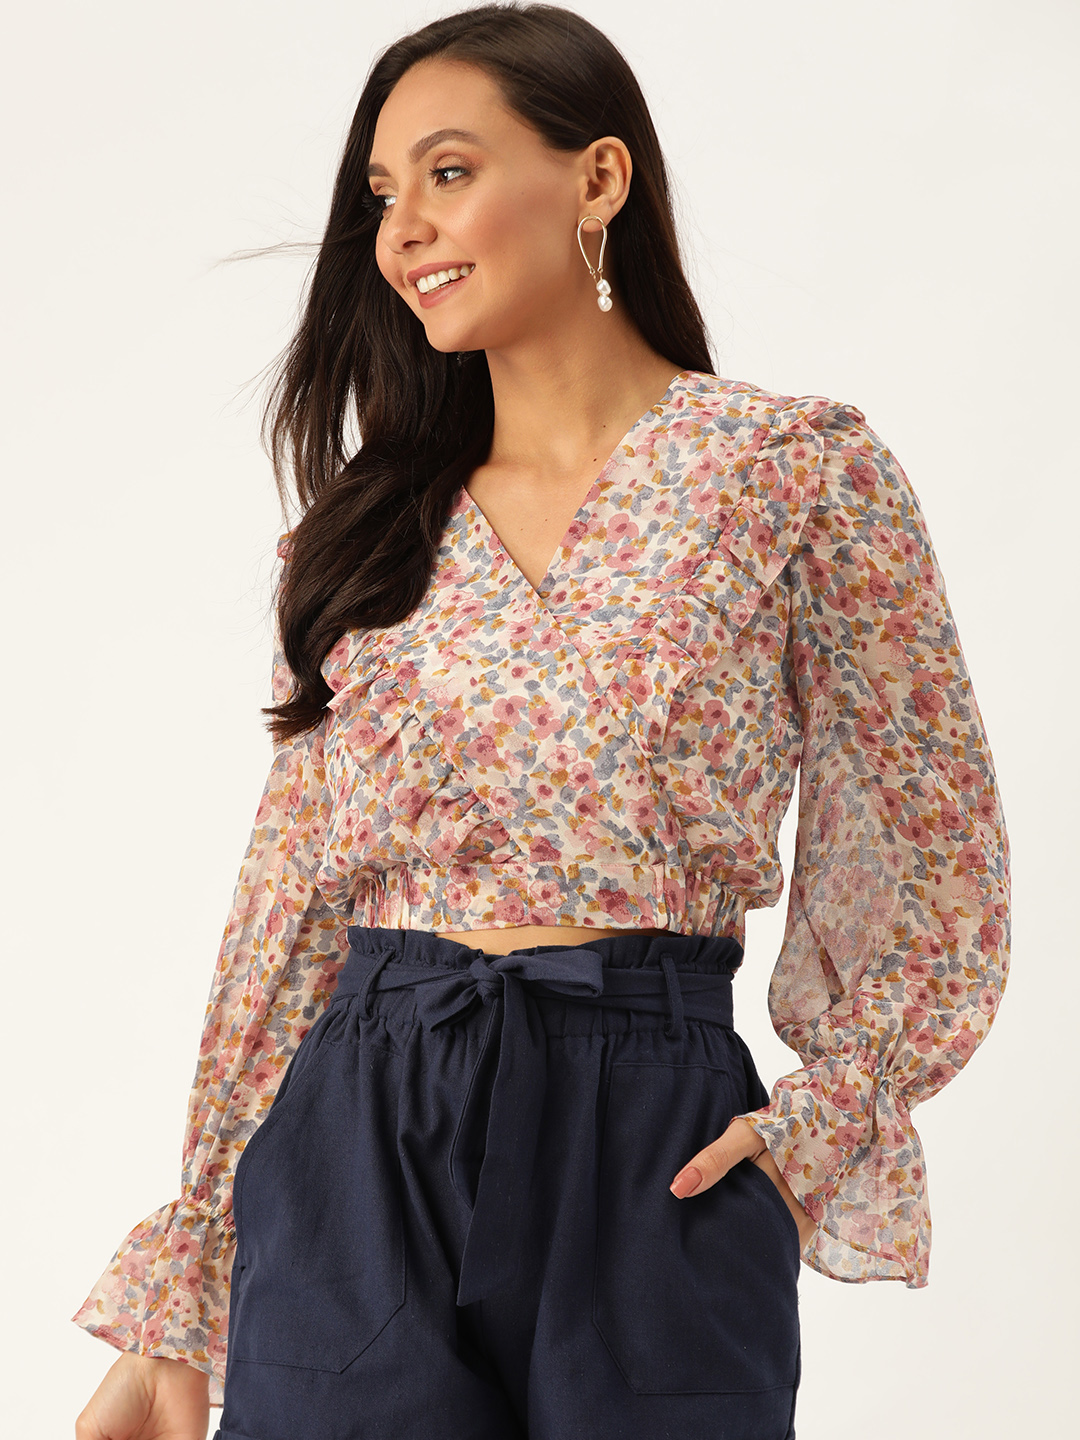 Tops-Wrapped With Florals Top1